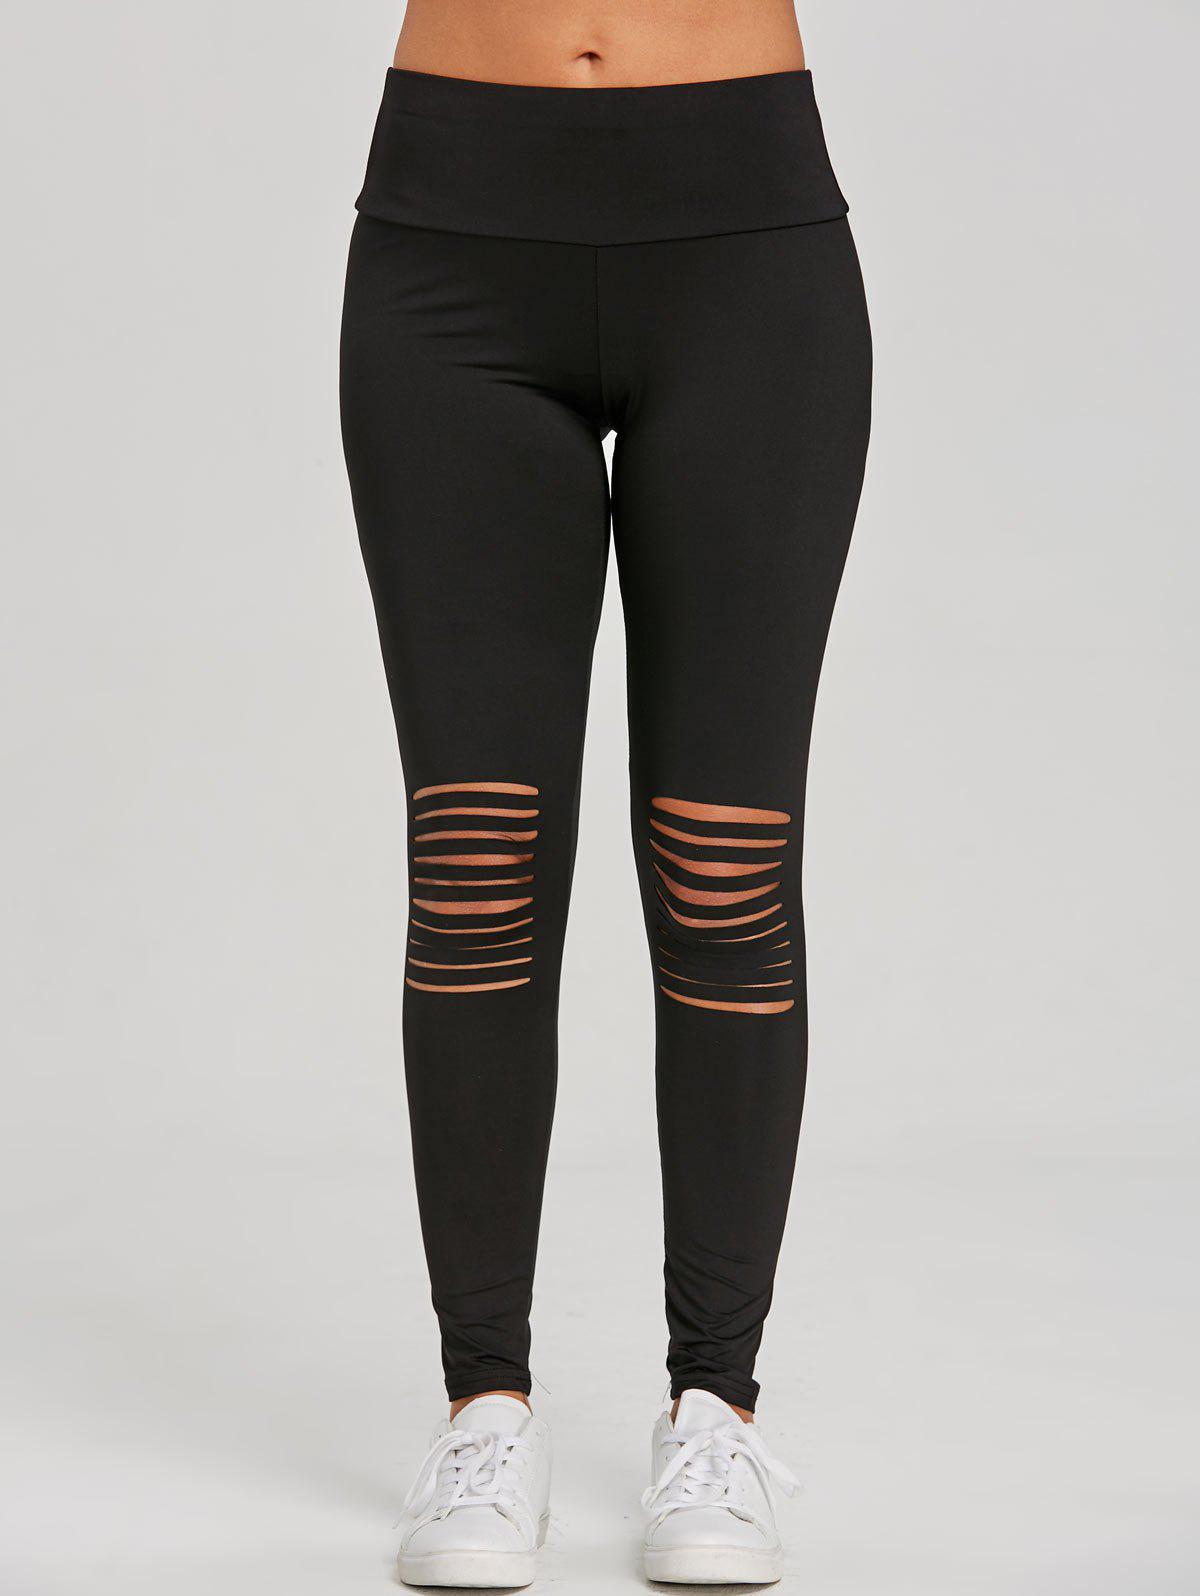 Skinny Distressed Sports Leggings - BLACK XL